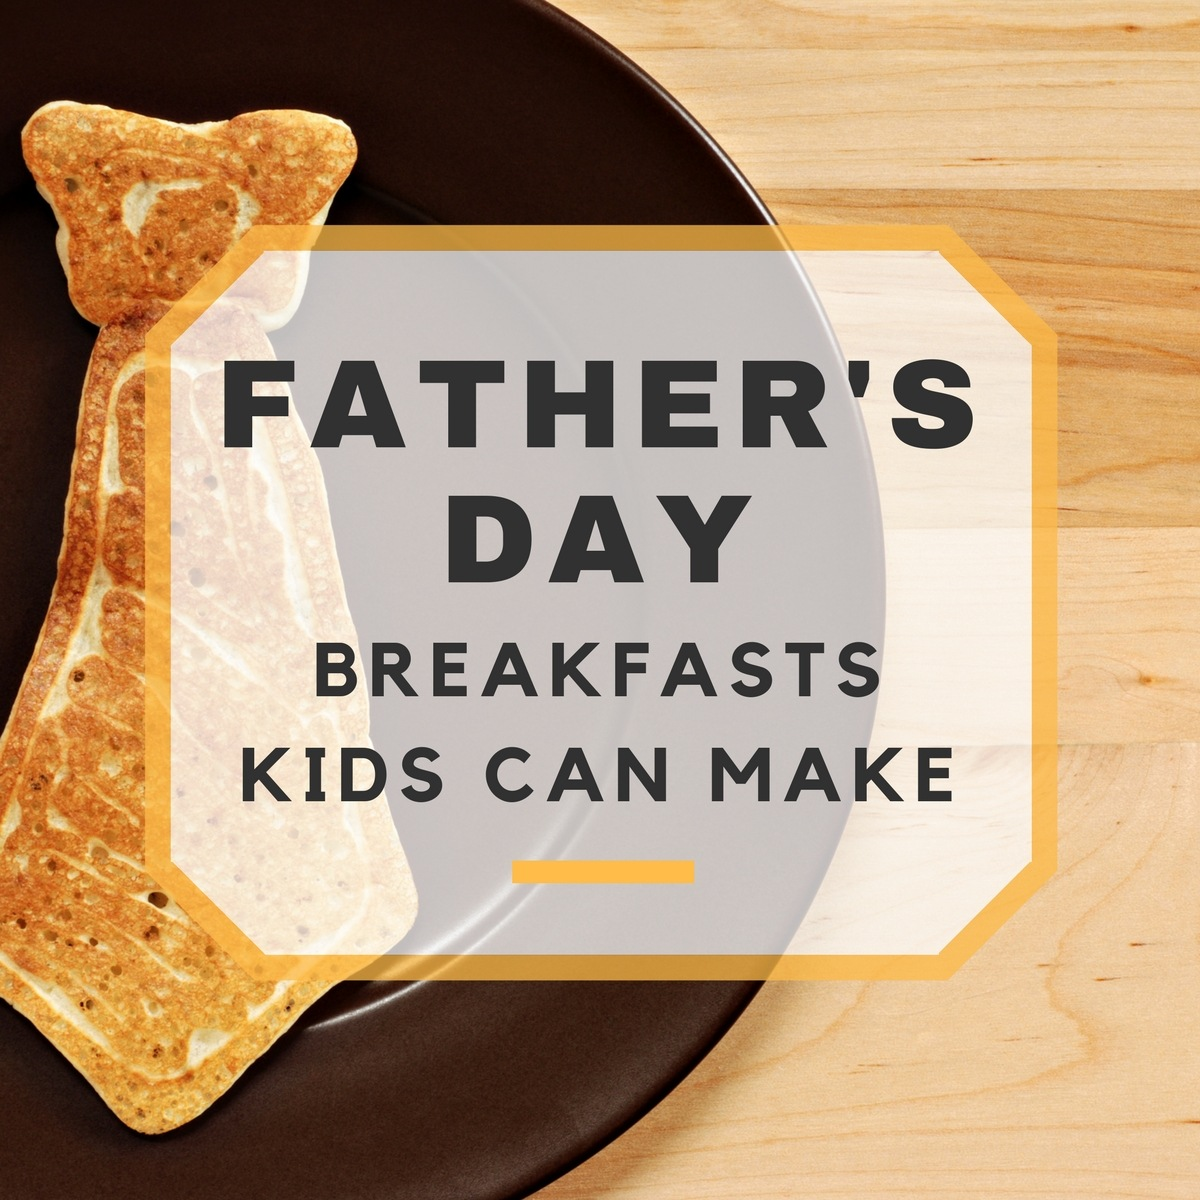 Breakfast can be a tough meal. With the challenges of limited time to eat and picky kids, it can be all too easy to fall back on sugared cereal or toast day after day.